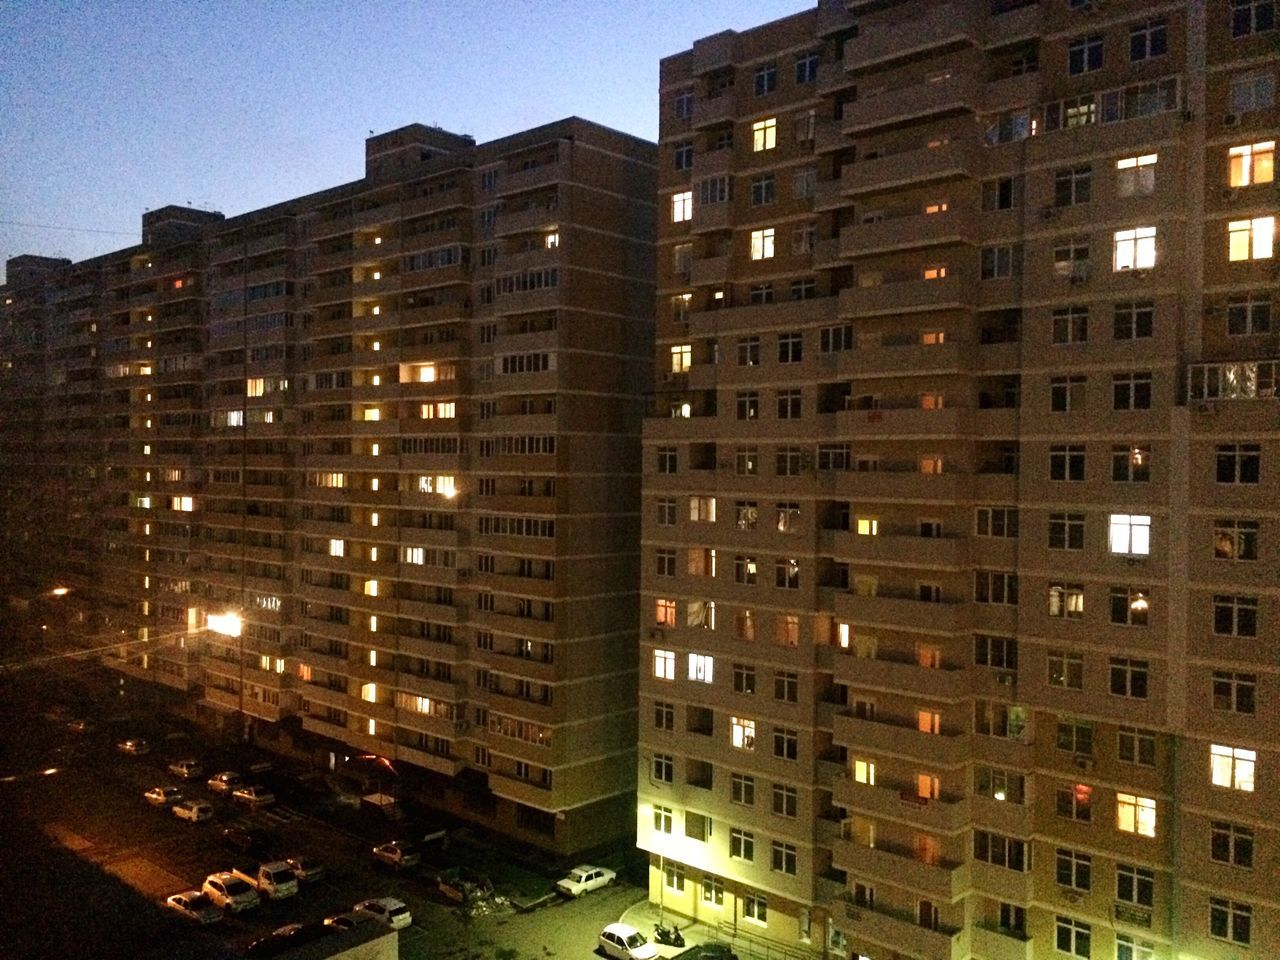 architecture, building exterior, city, window, built structure, apartment, skyscraper, urban, illuminated, residential building, night, residential, no people, outdoors, cityscape